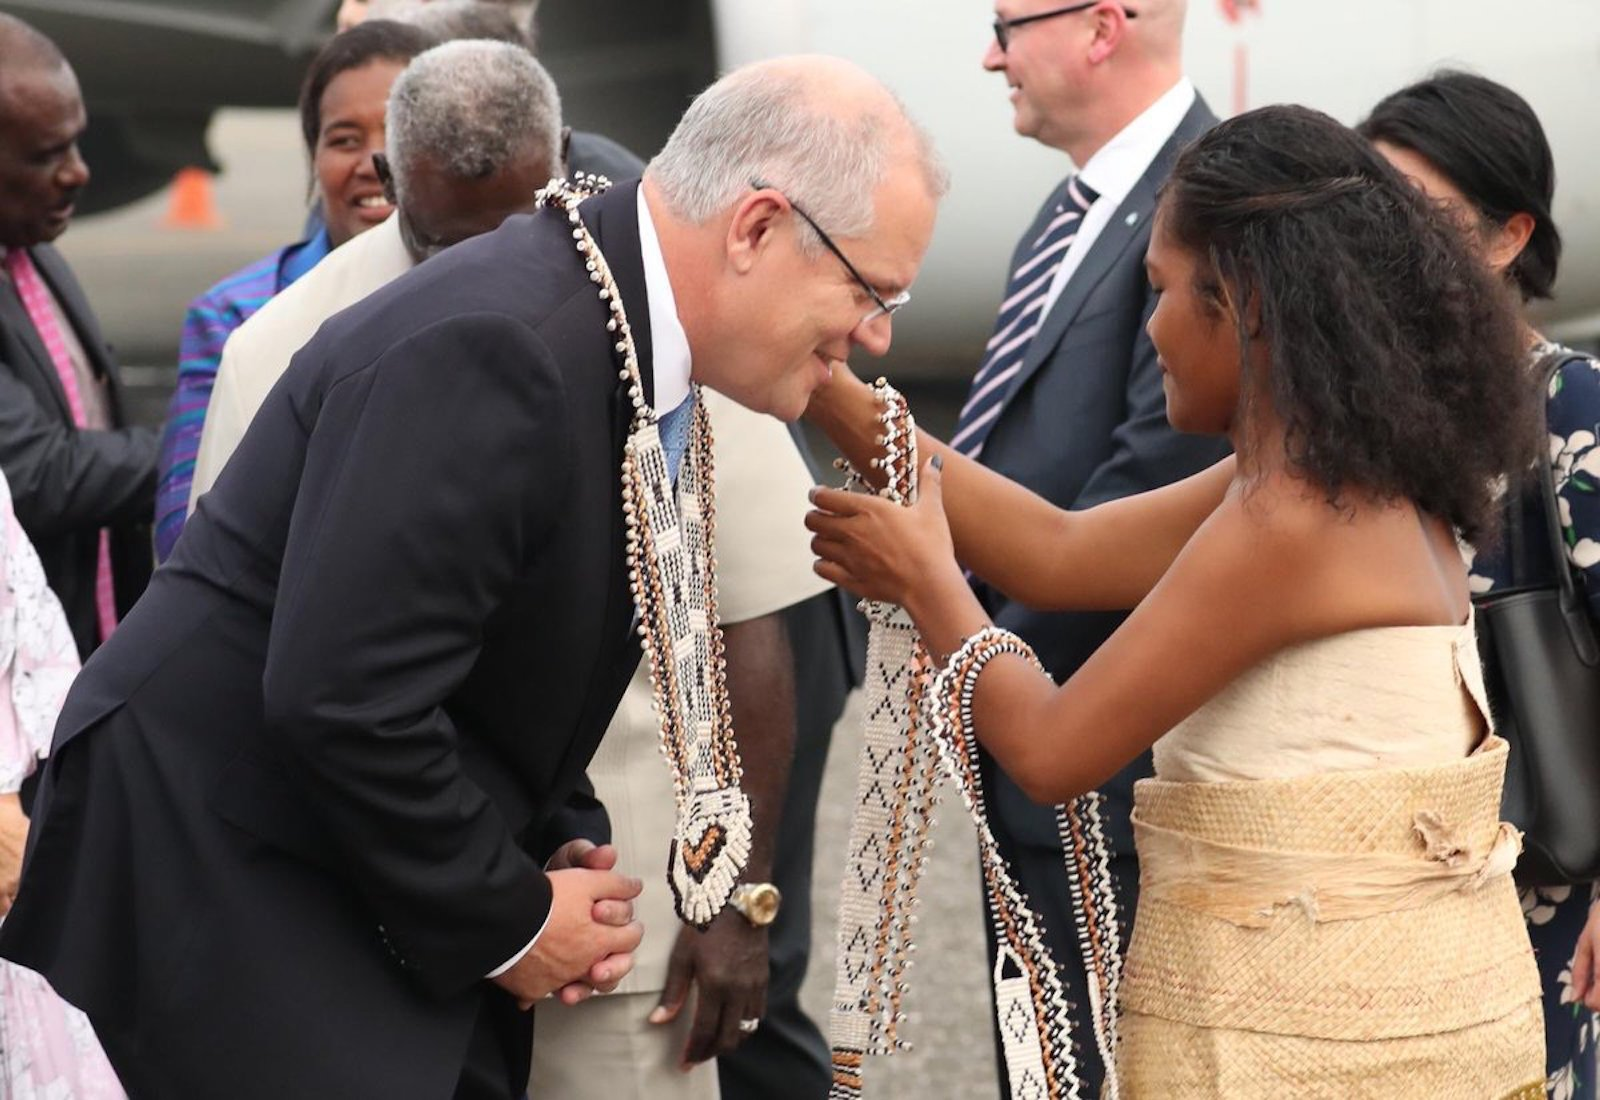 Scott Morrison is welcomed to Solomon Islands this week (Photo: Scott Morrison/Flickr)